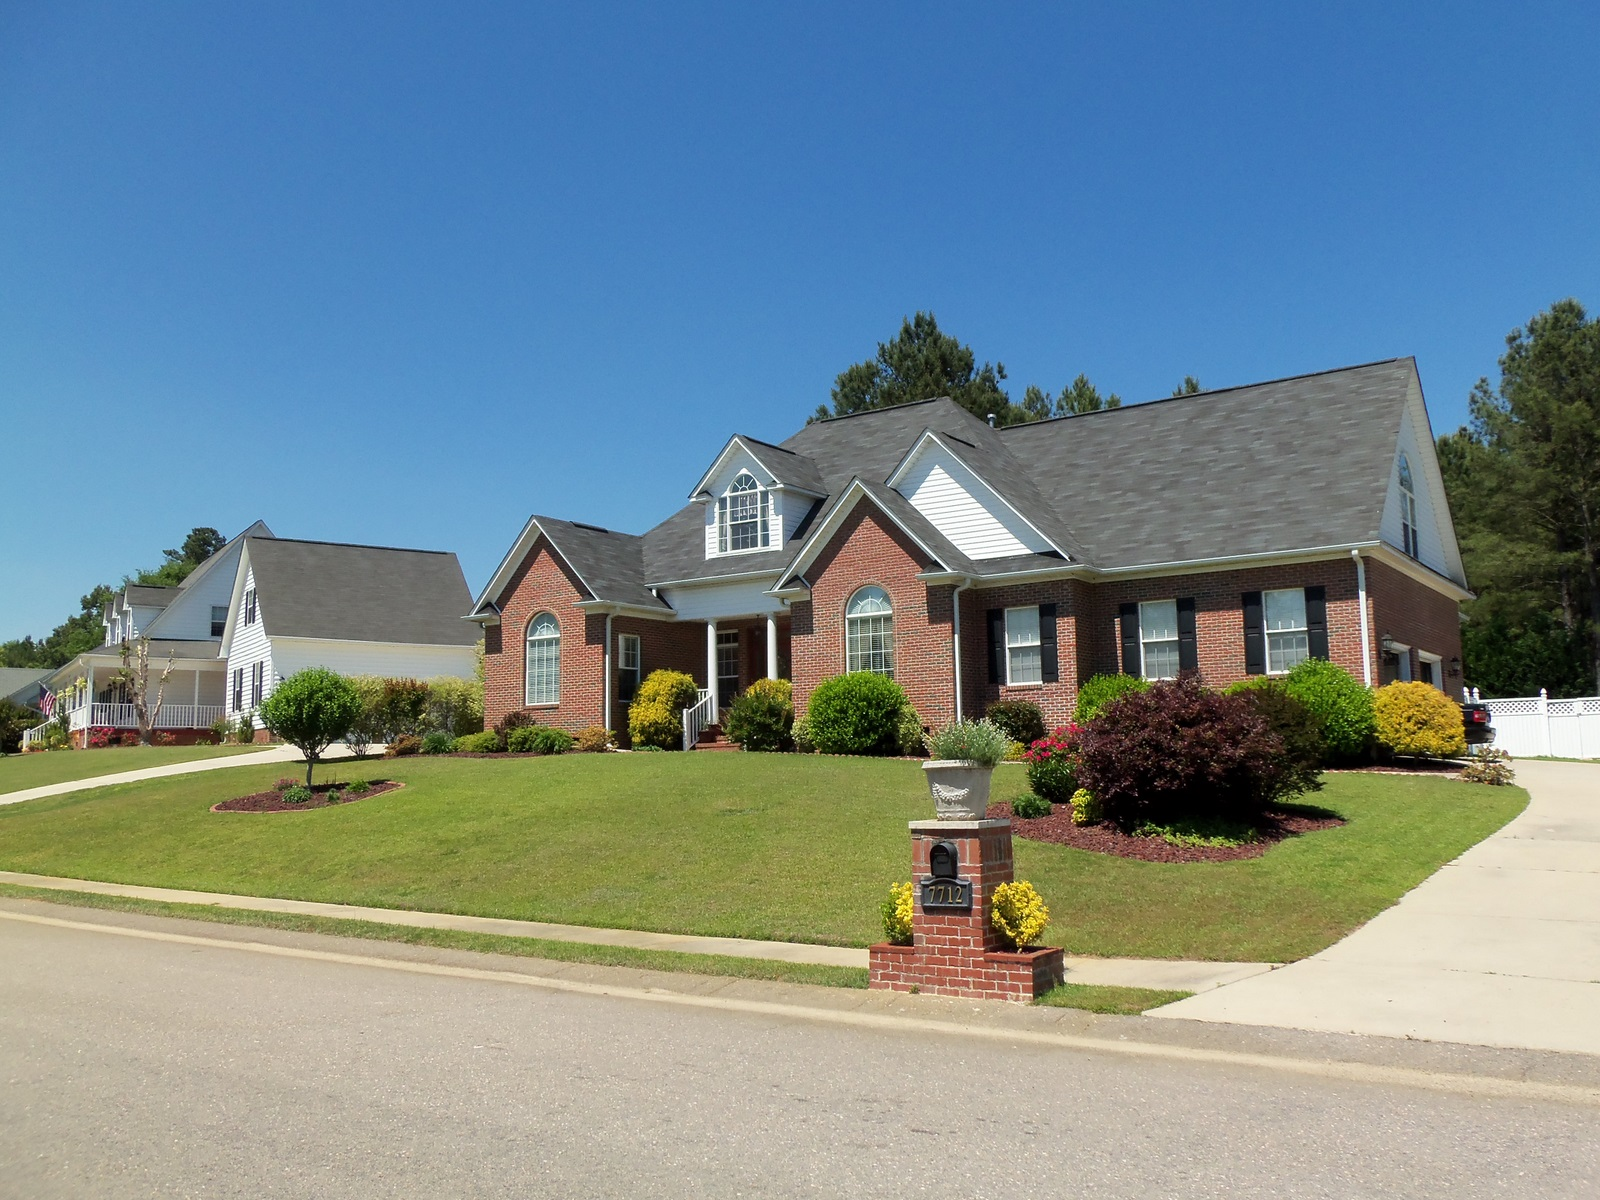 5 bedroom homes. Front View Top 3 Reasons to Choose This 5 Bedroom Home in Fayetteville  NC